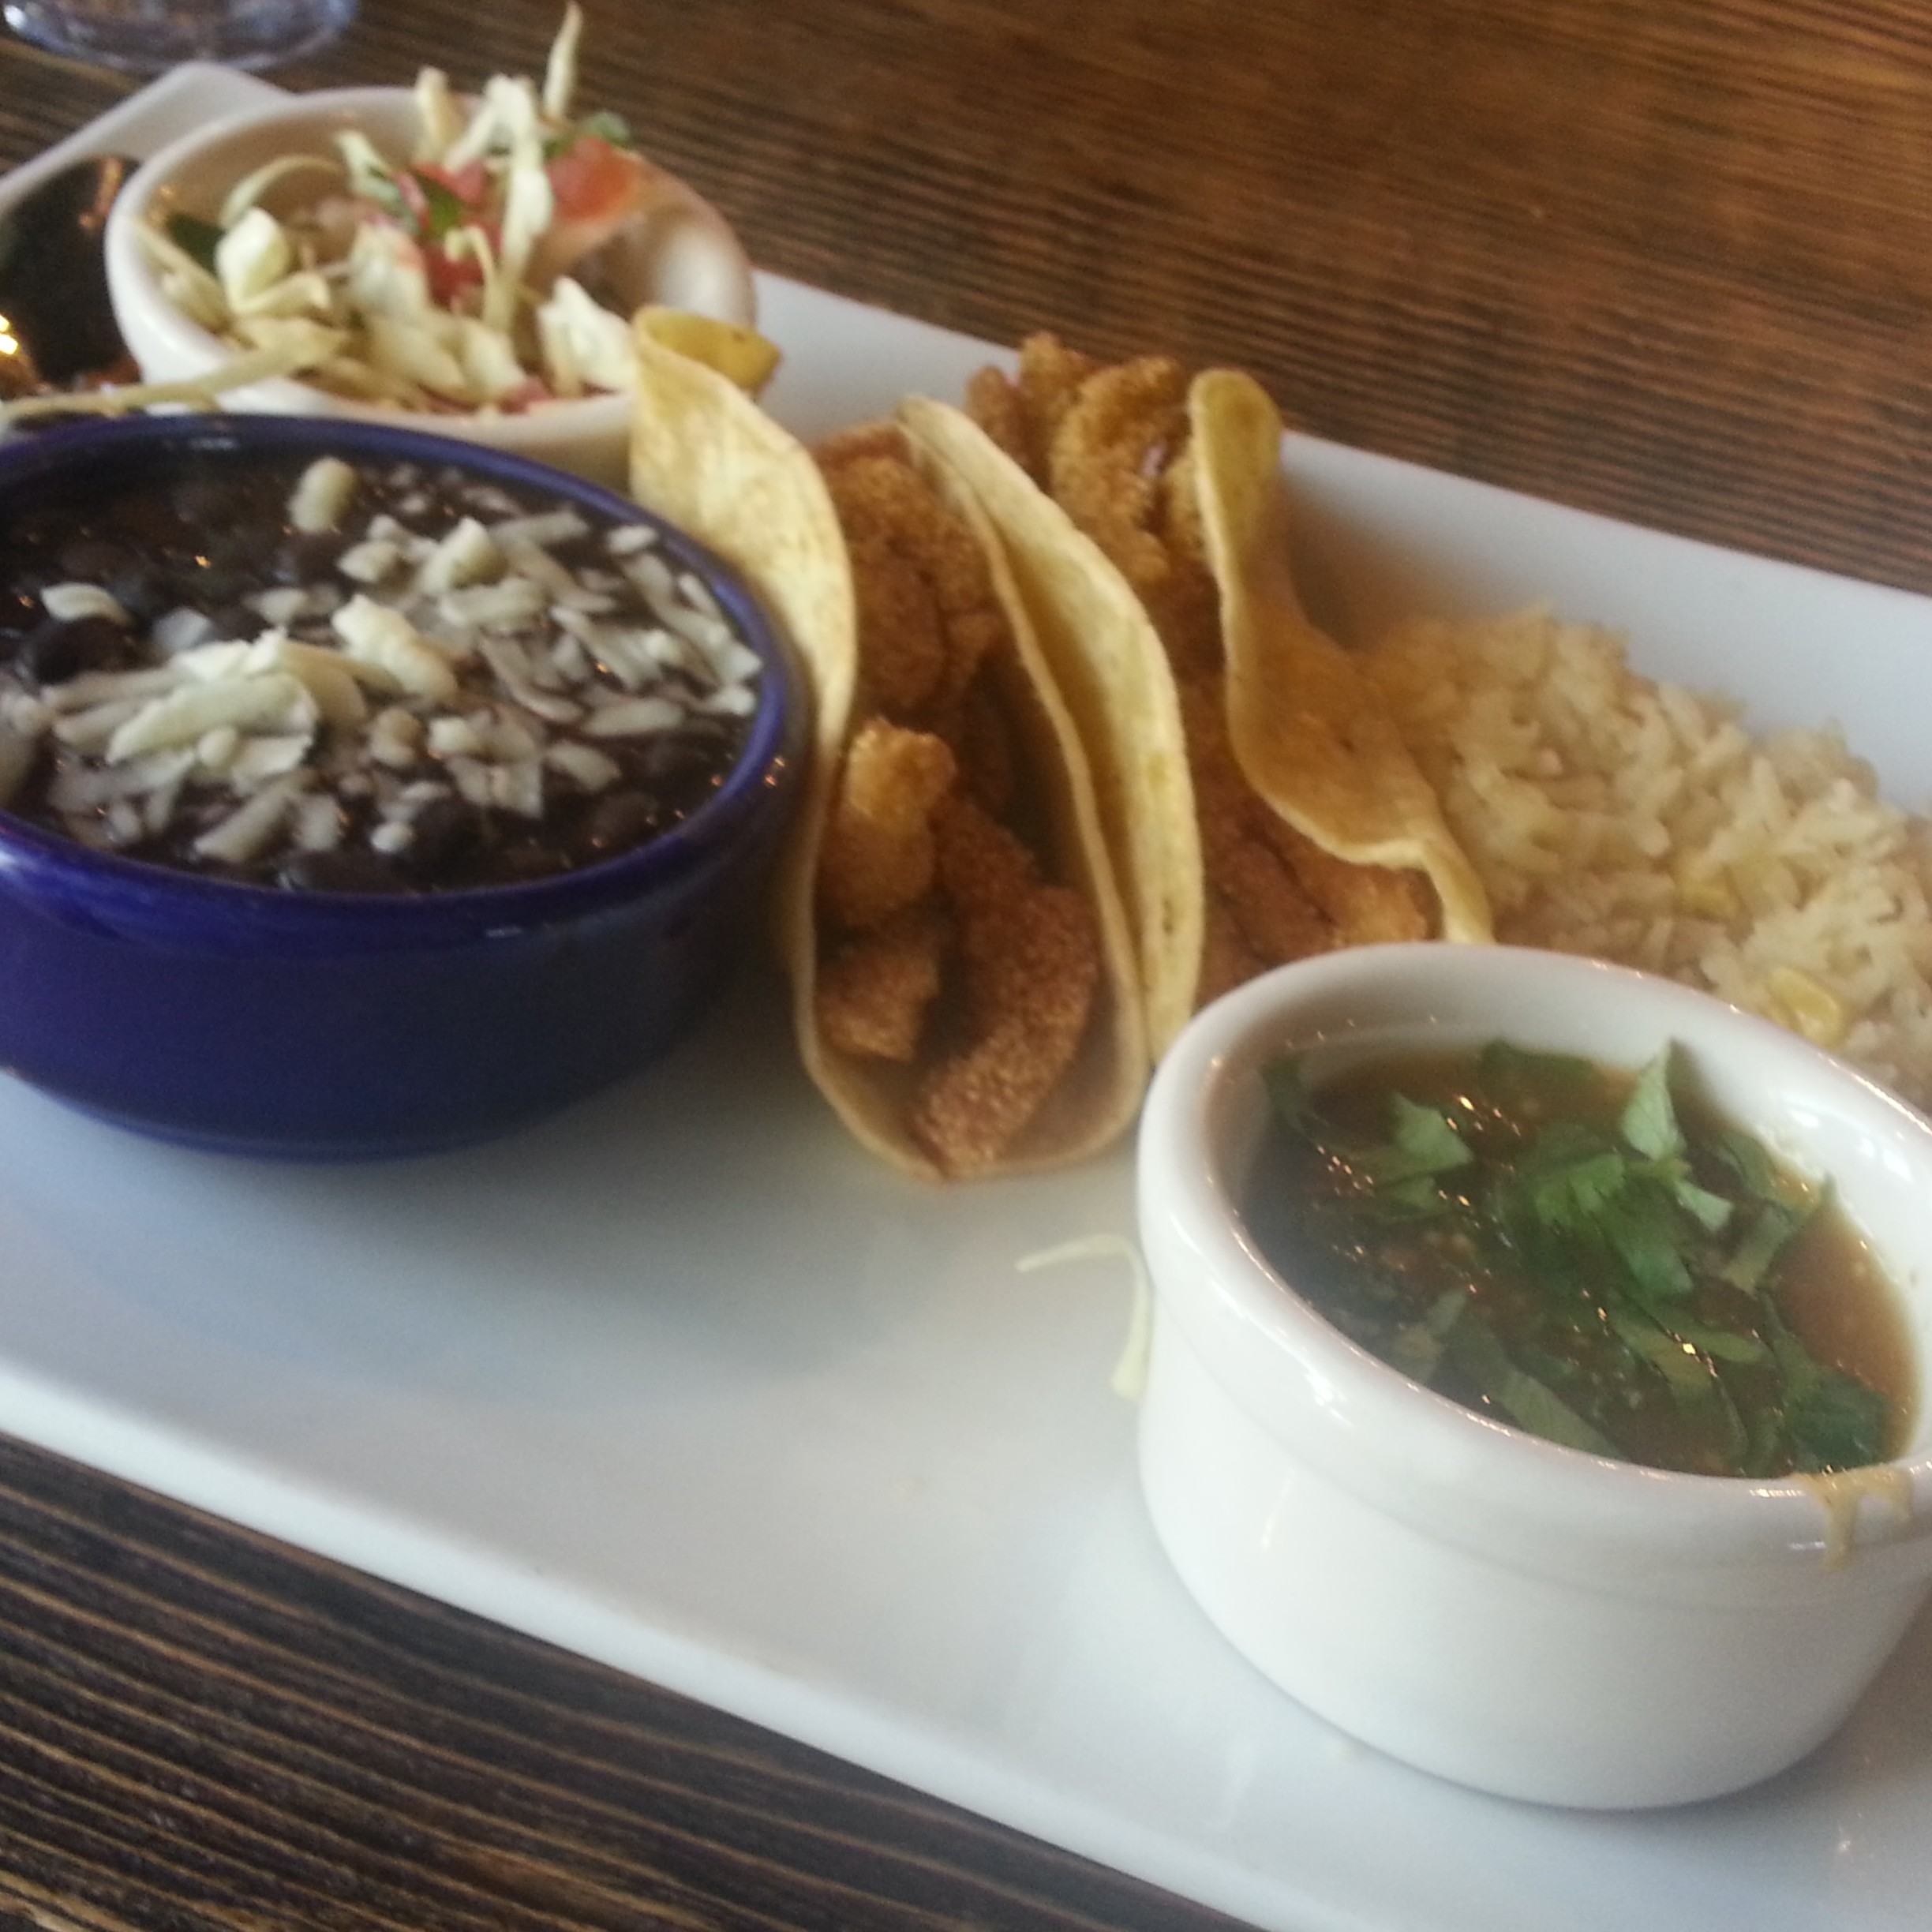 Fish Tacos At Azul Tequila Mexican Cuisine In Bentonville Nwa Food